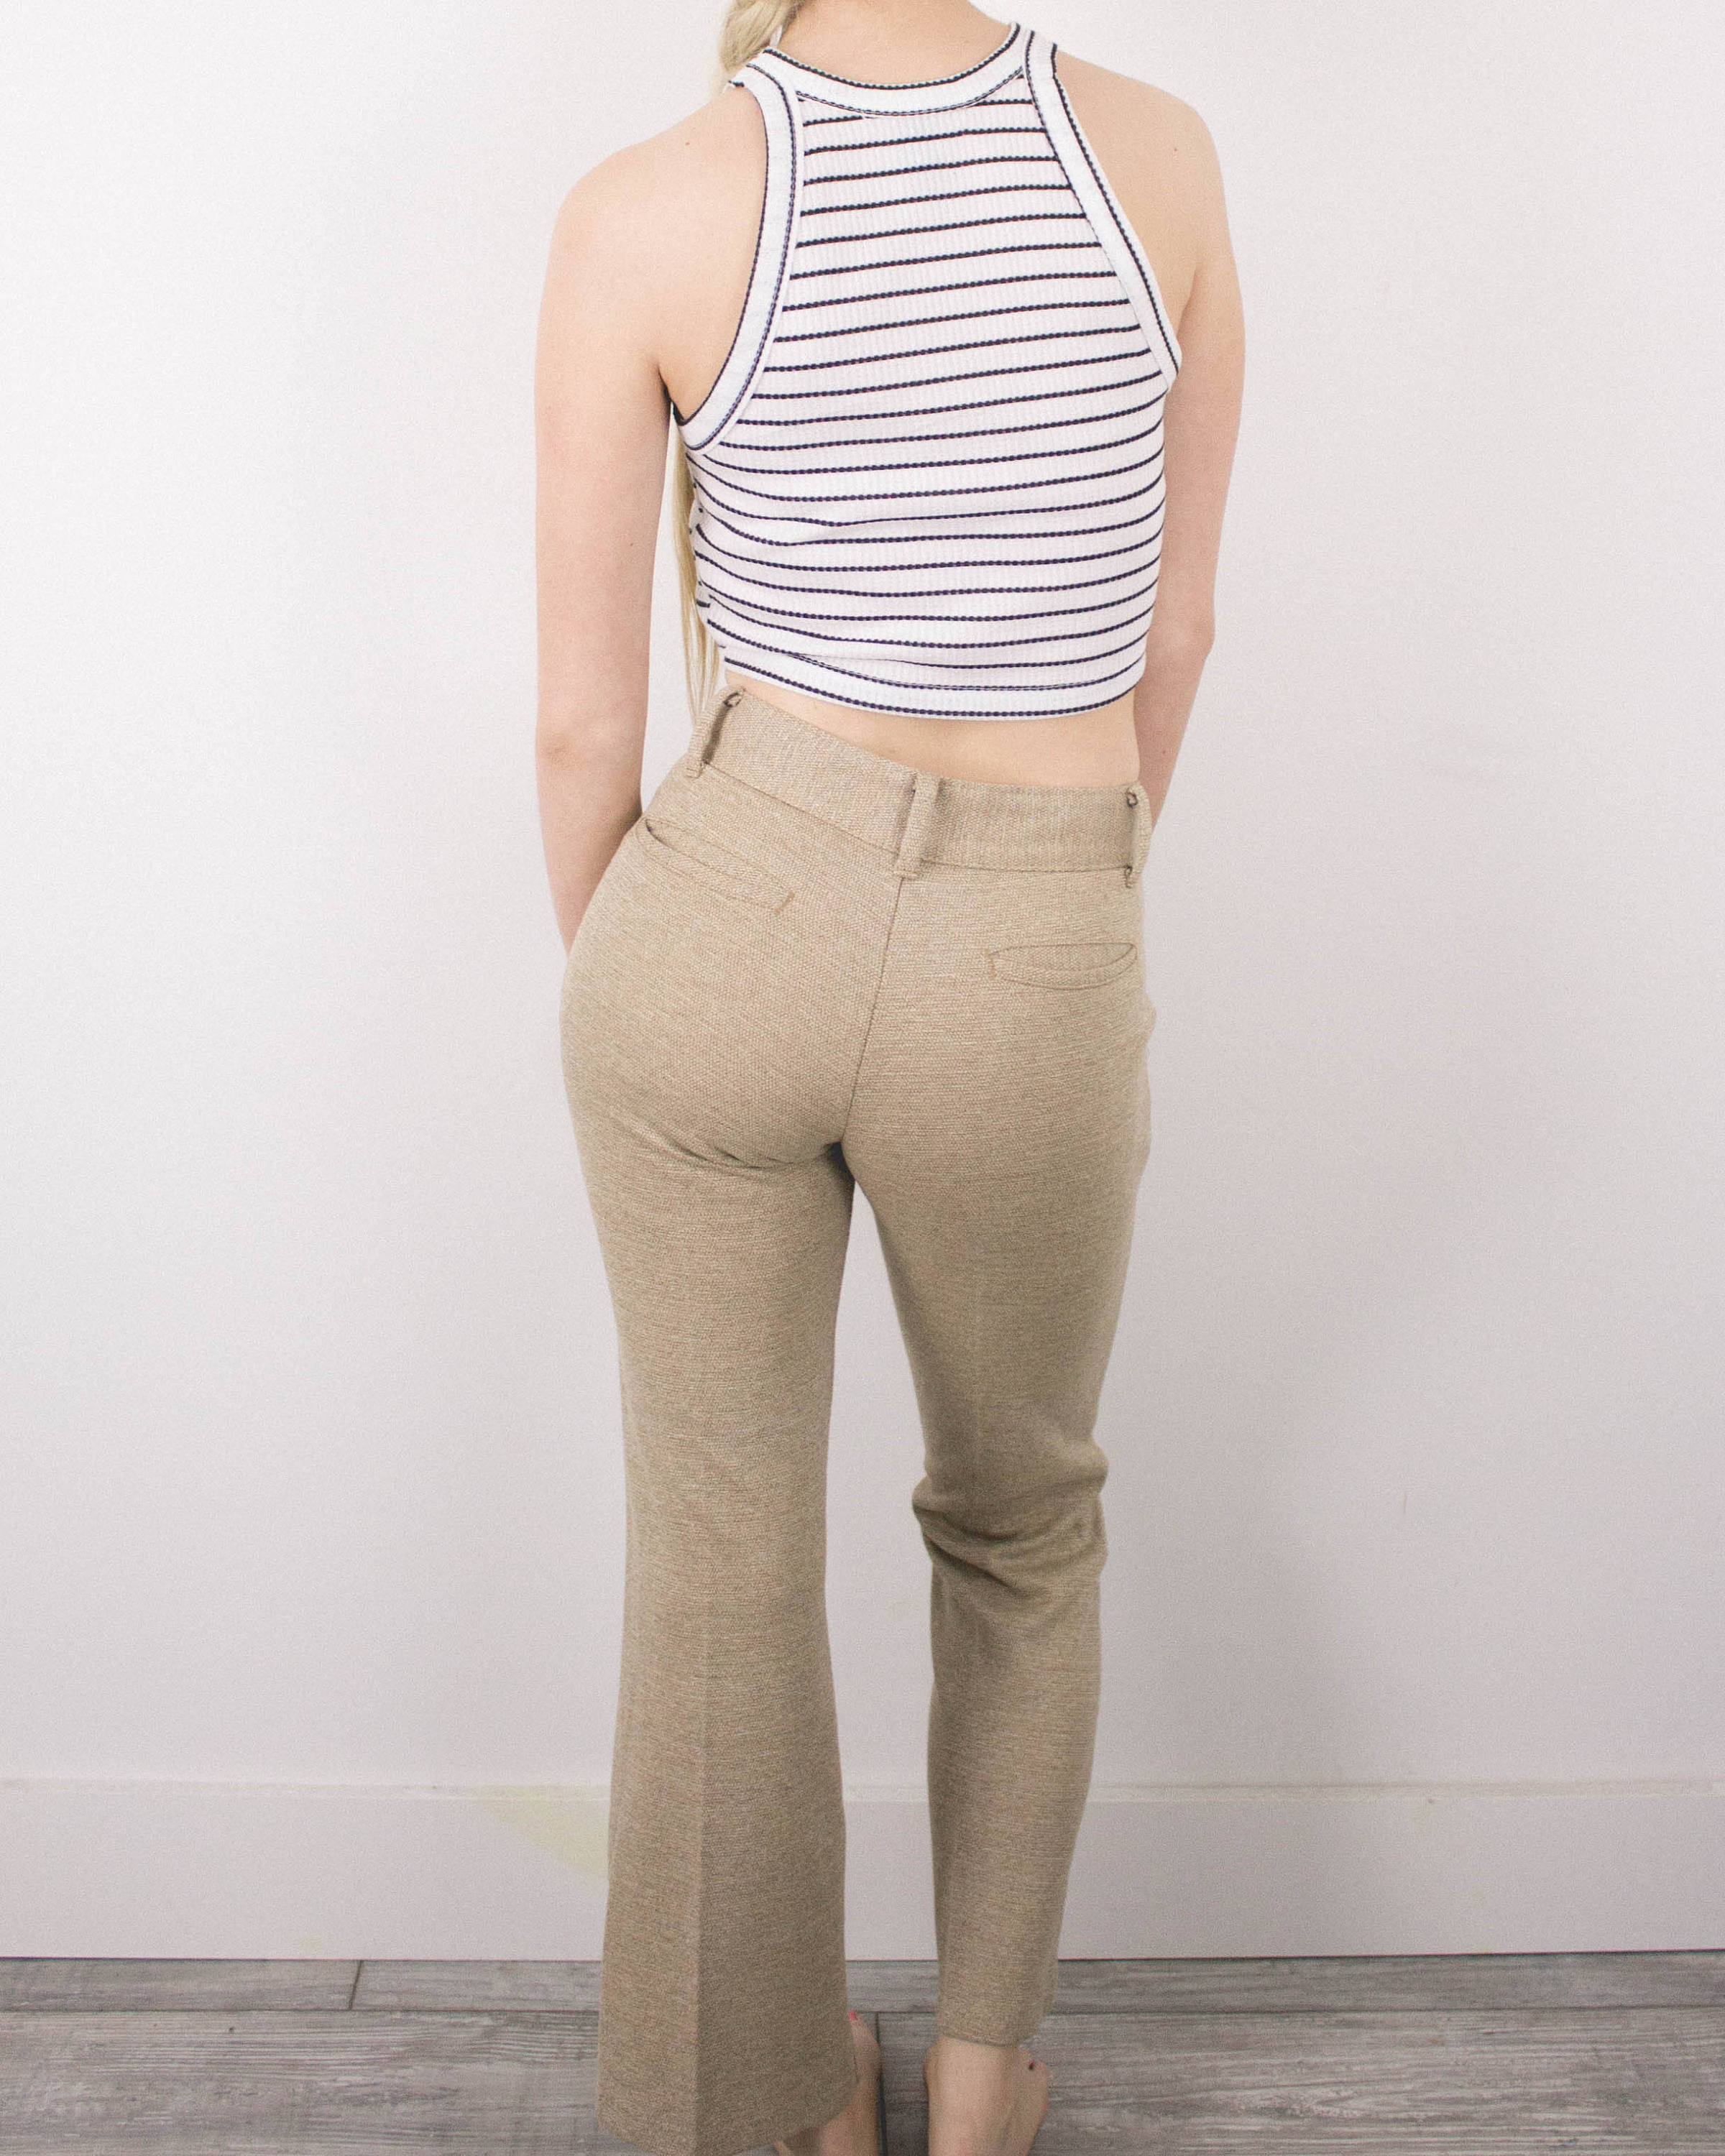 Vintage 24/25 Khaki Bell Bottoms High Waisted Jeans